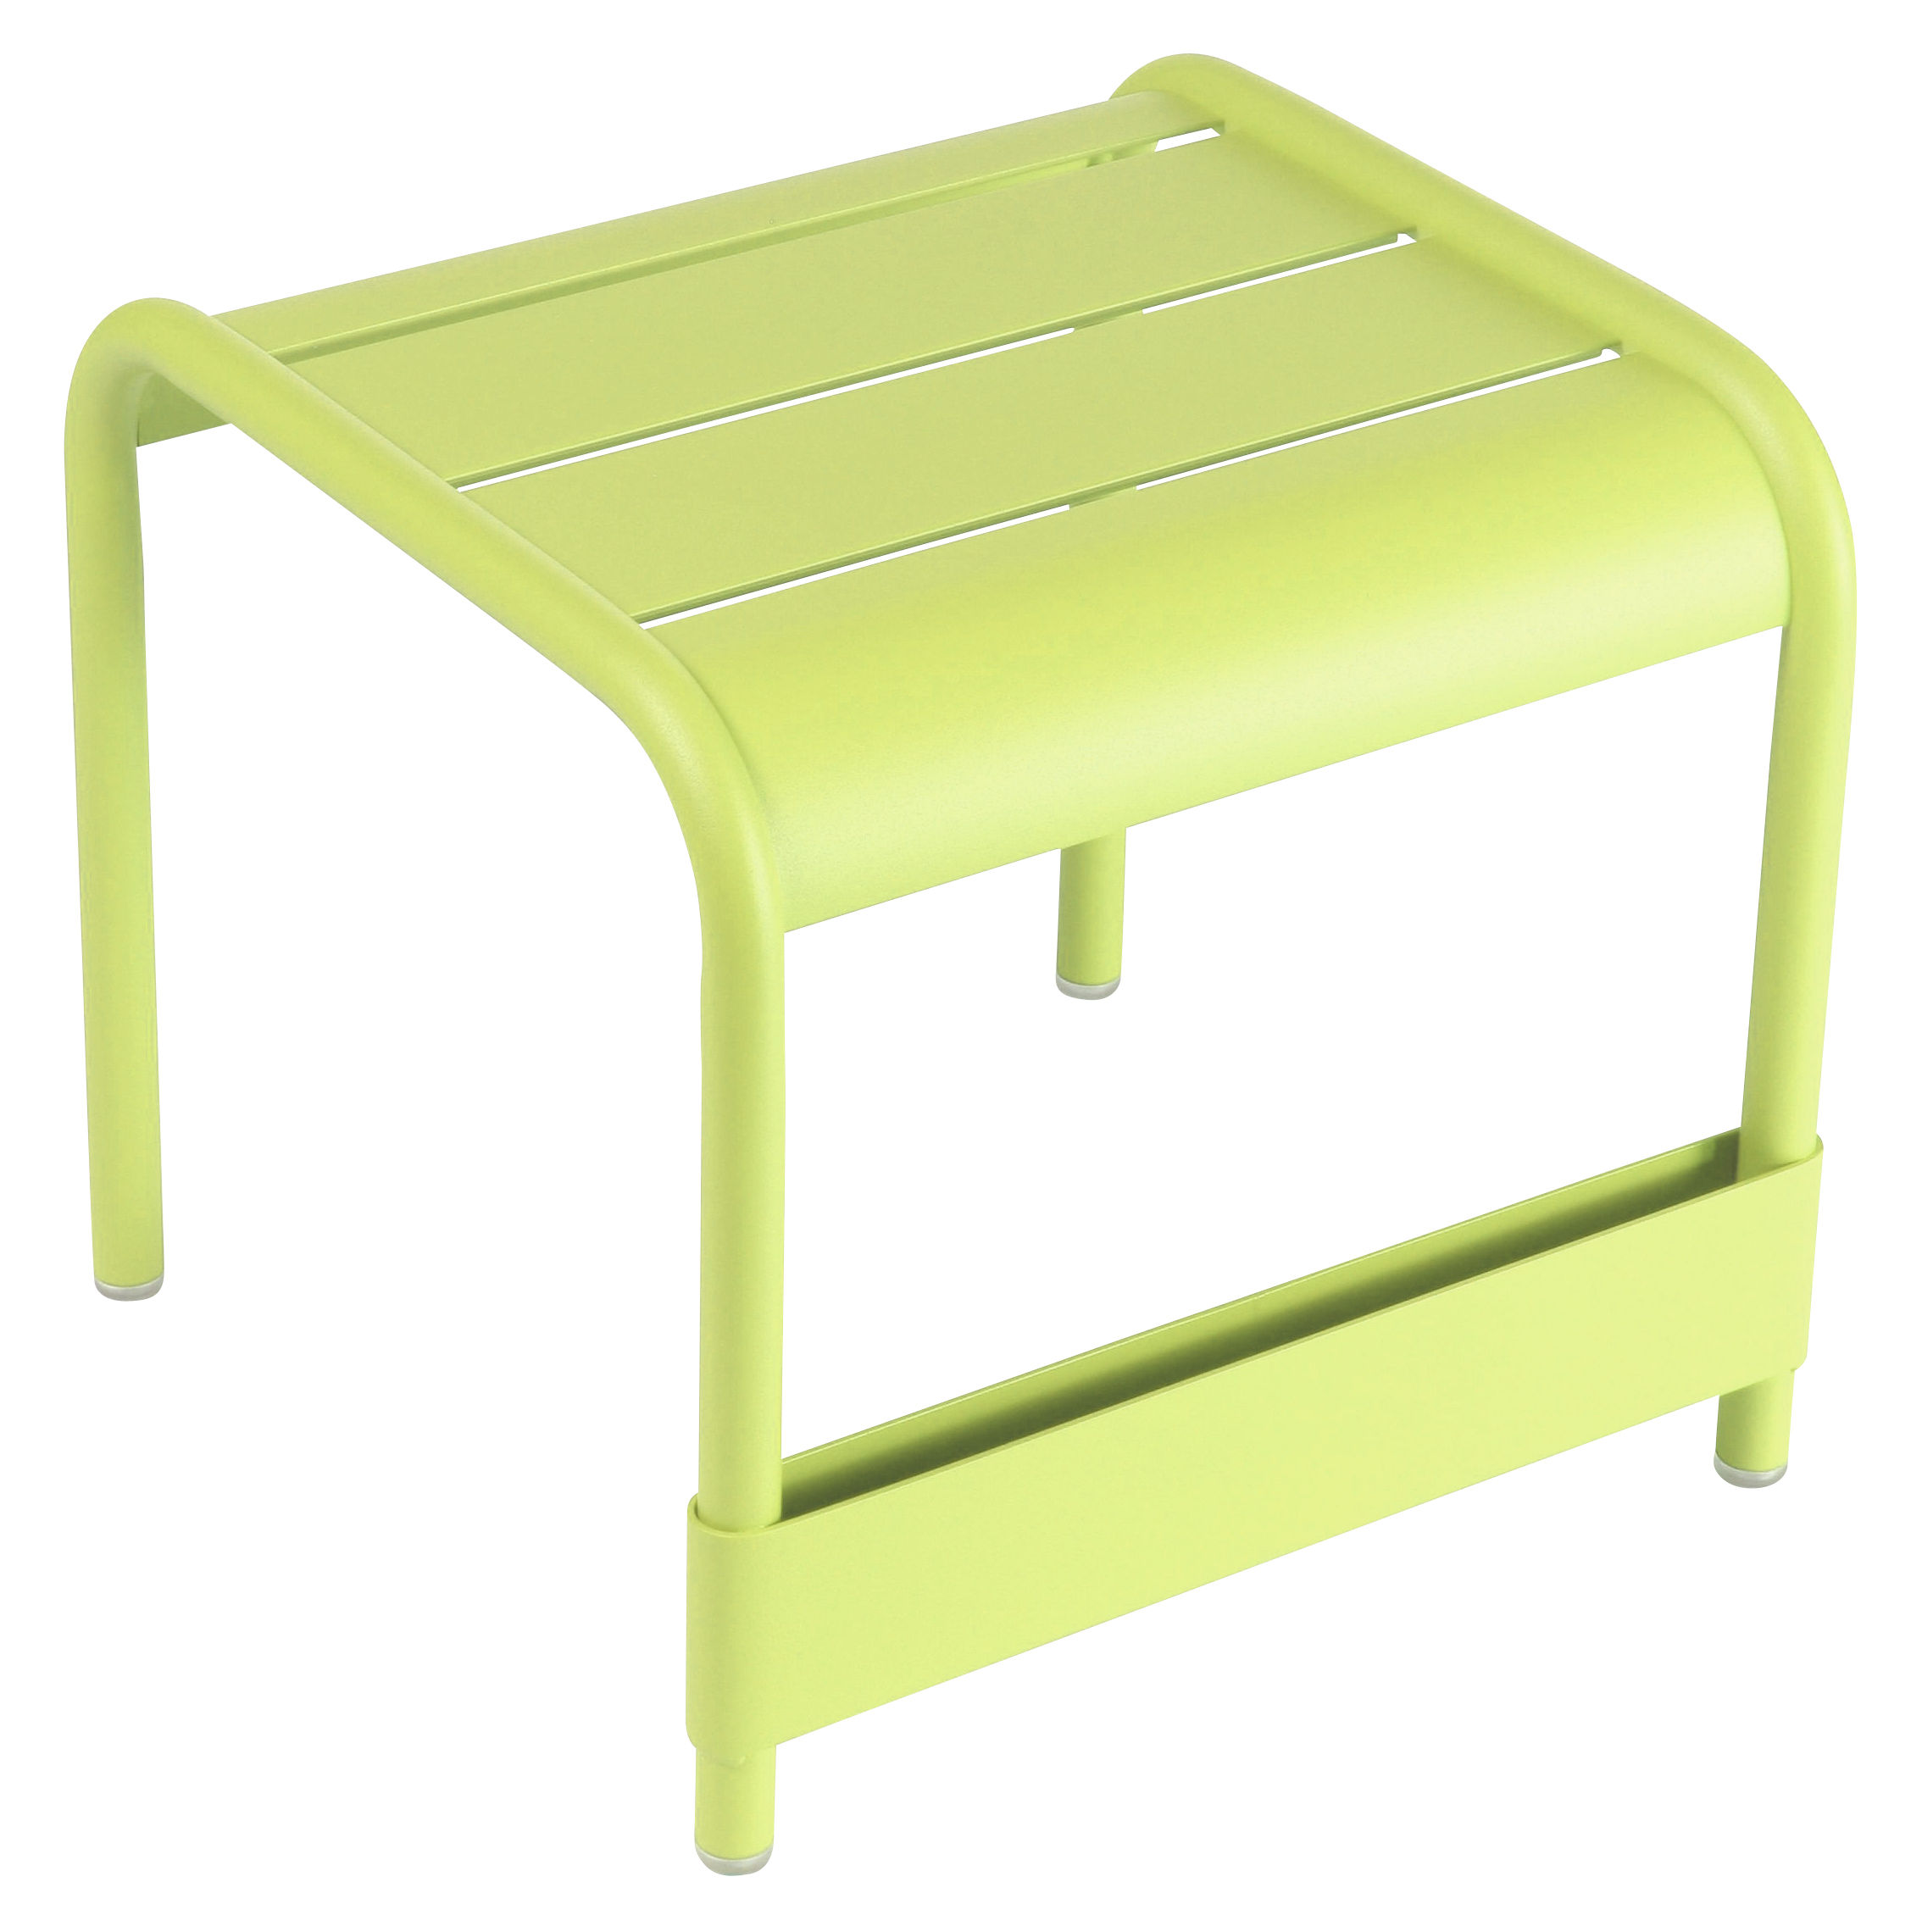 Luxembourg end table l 42 cm verbena by fermob for Fermob luxembourg table